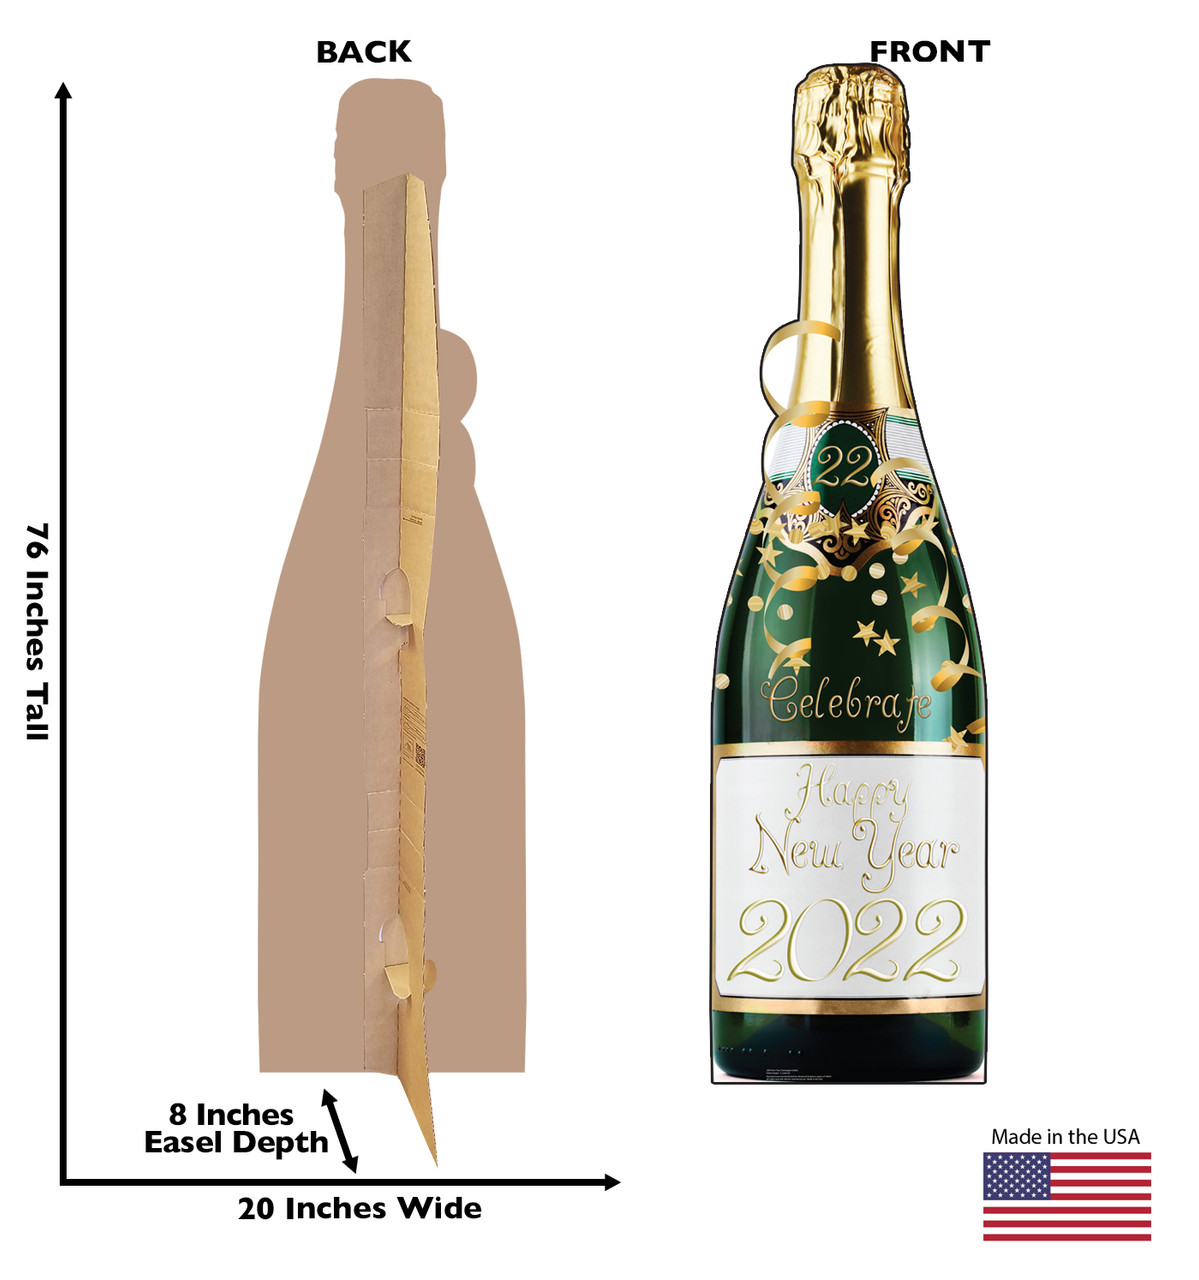 Life-size cardboard standee of a New Years Champagne Bottle. View of back and front of standee with dimensions.